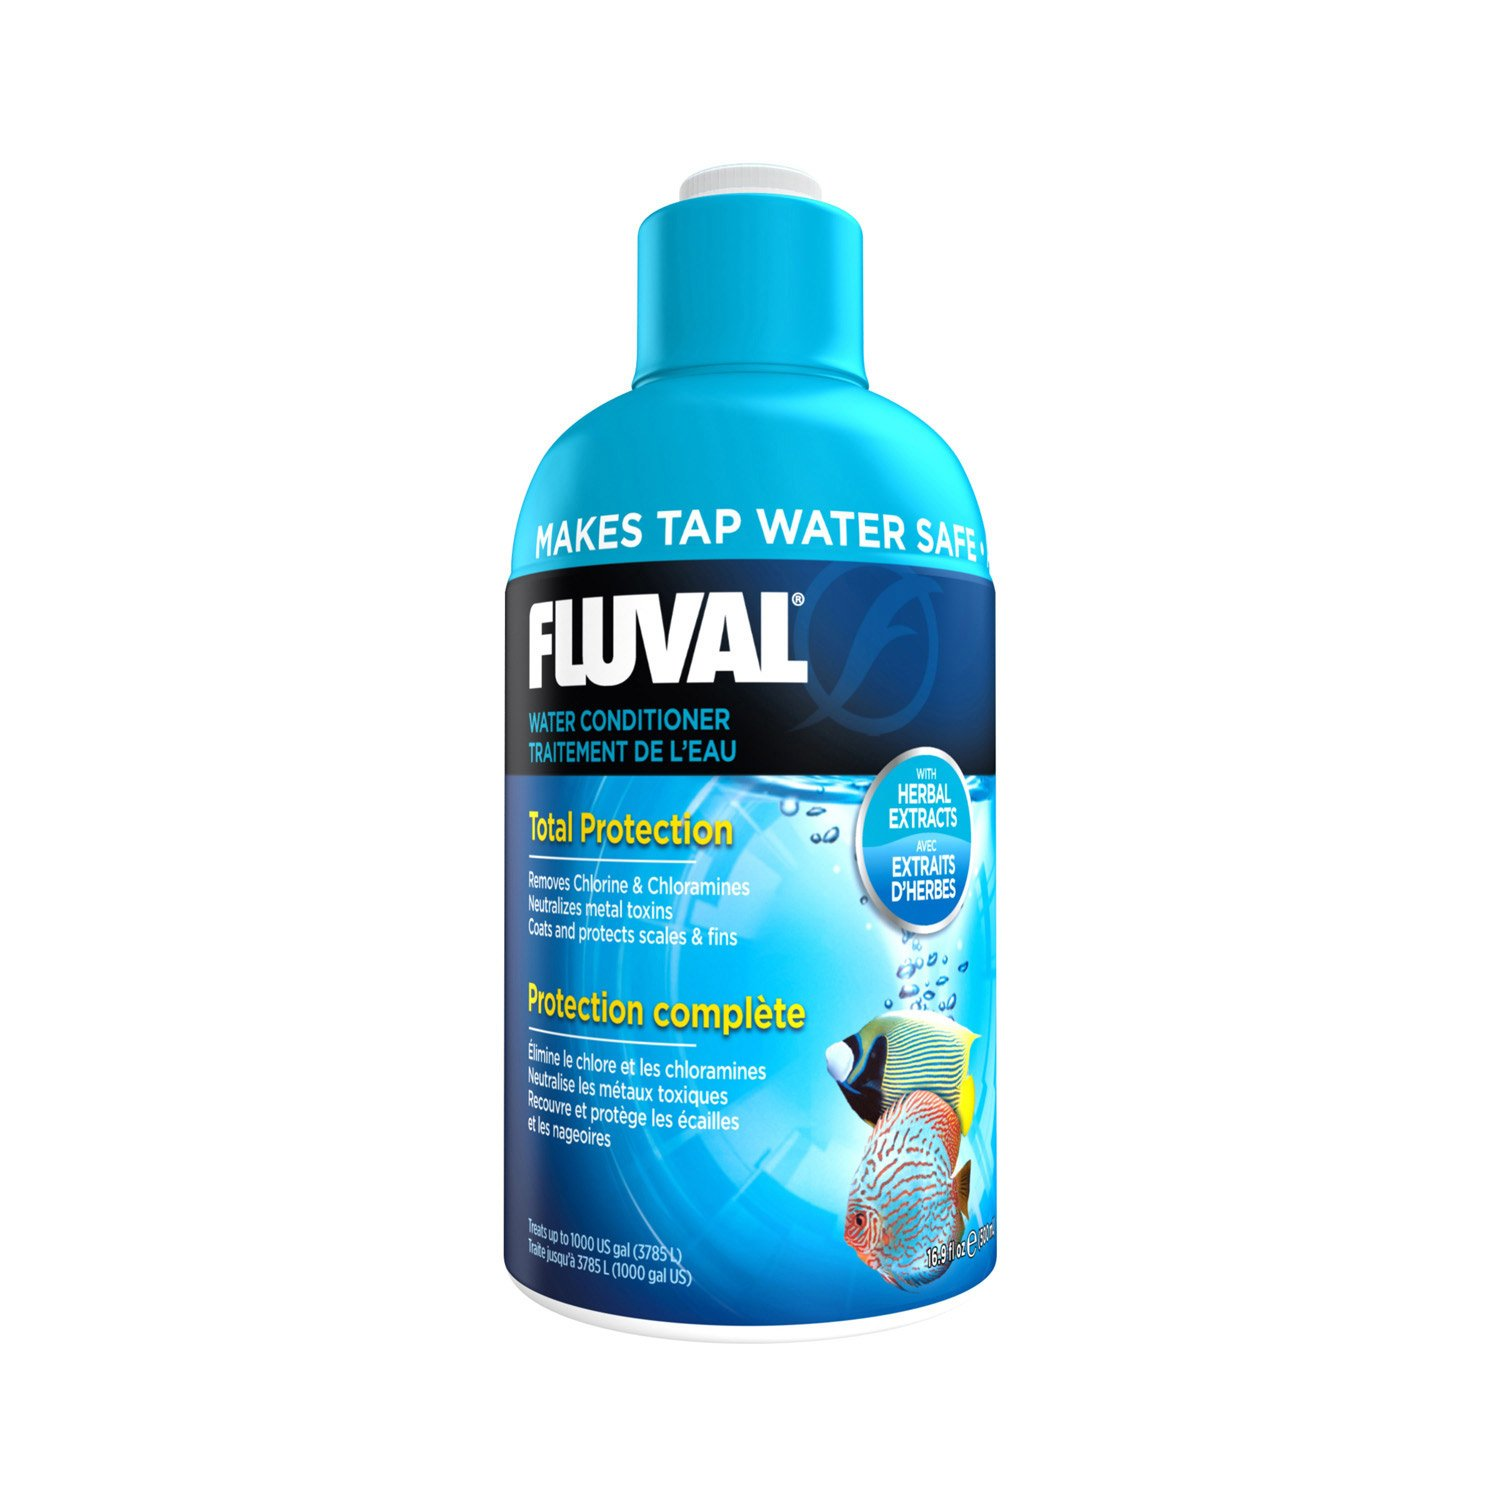 Fluval Water Conditioner